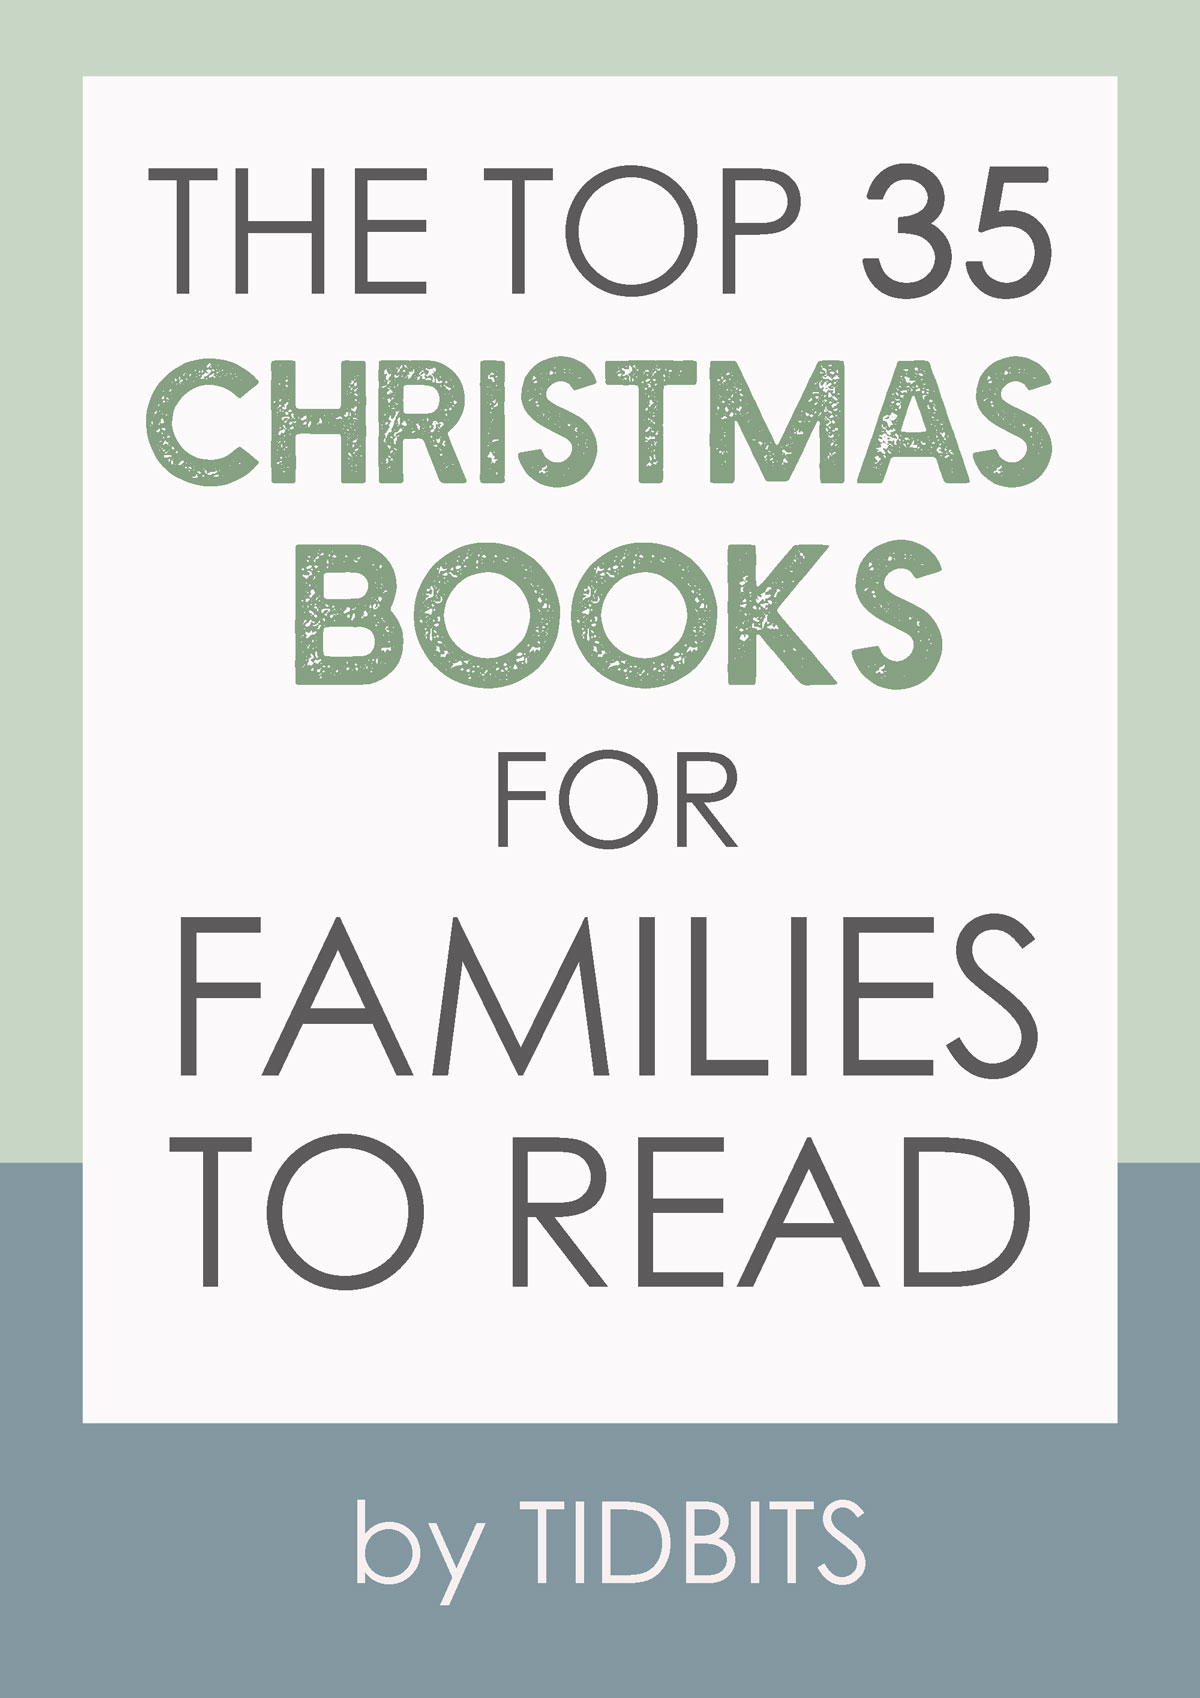 THE TOP 35 CHRISTMAS BOOKS FOR FAMILIES TO READ